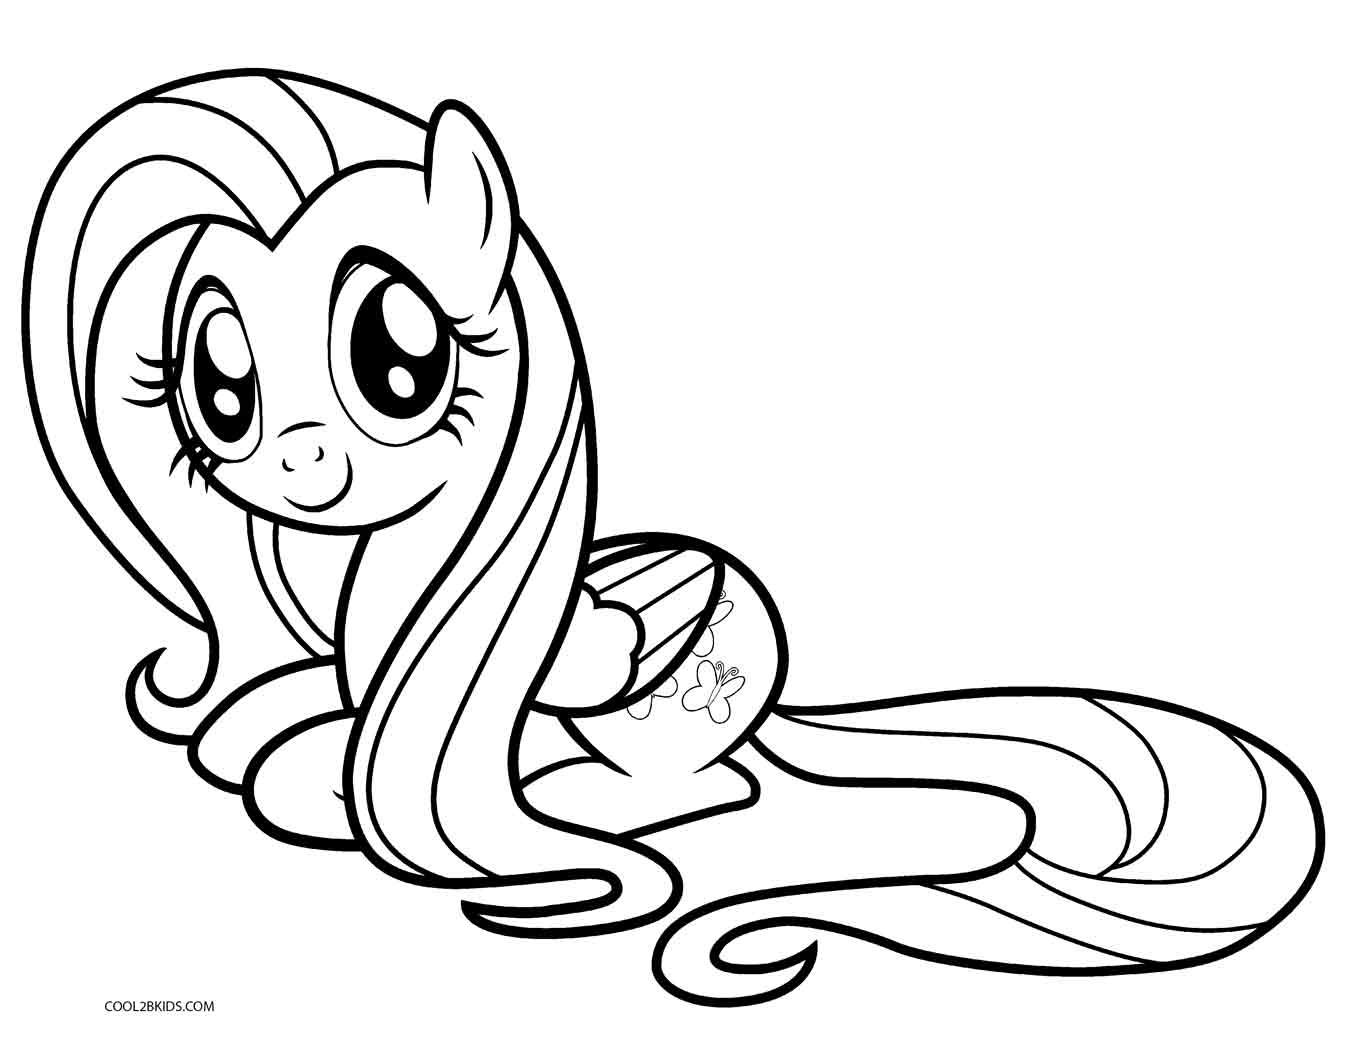 pony coloring pages to print at getdrawings free